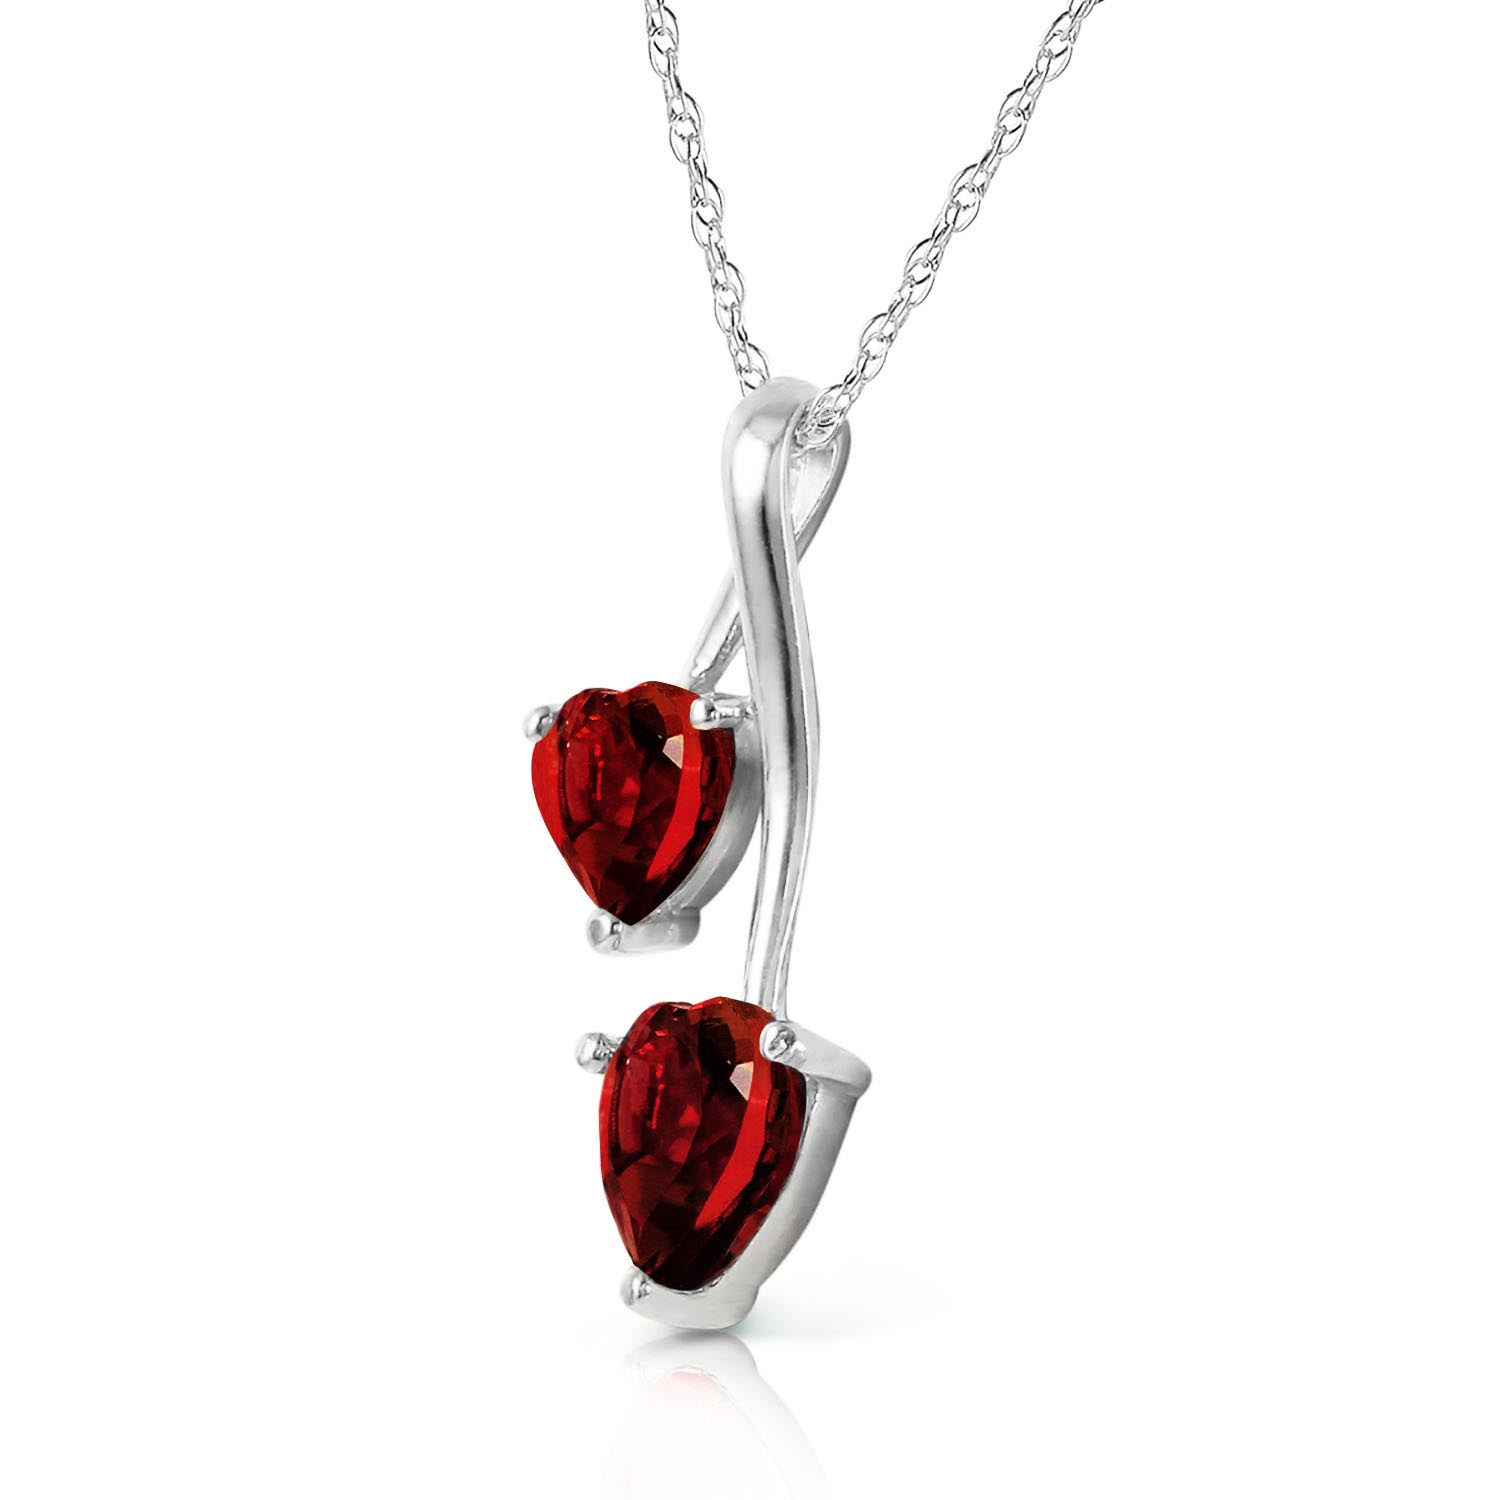 Garnet Twin Heart Pendant Necklace 1.4ctw in 9ct White Gold